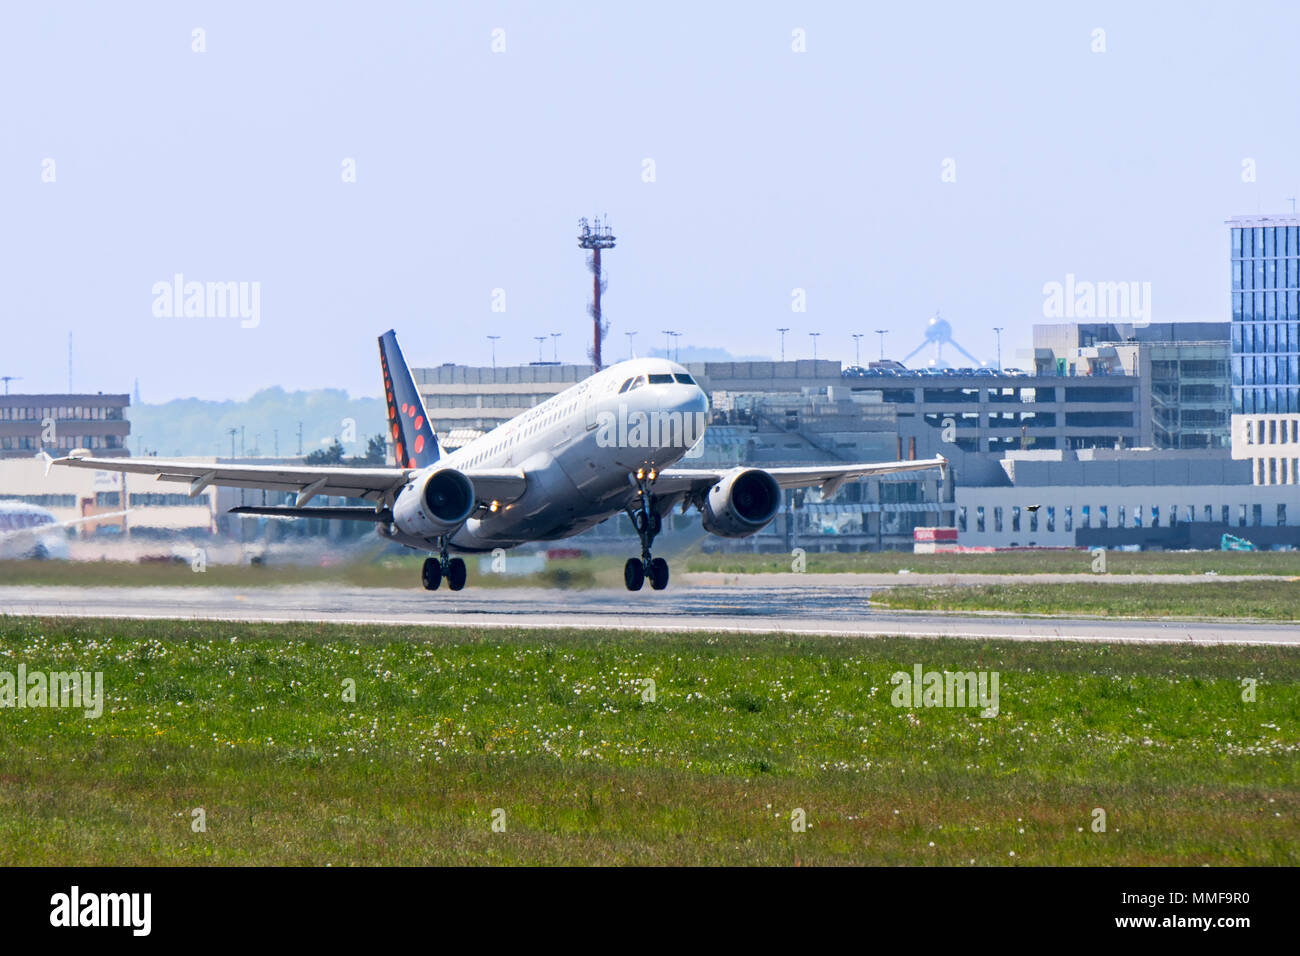 Airbus A319-111 from Brussels Airlines taking off from runway at the Brussels-National airport, Zaventem, Belgium - Stock Image